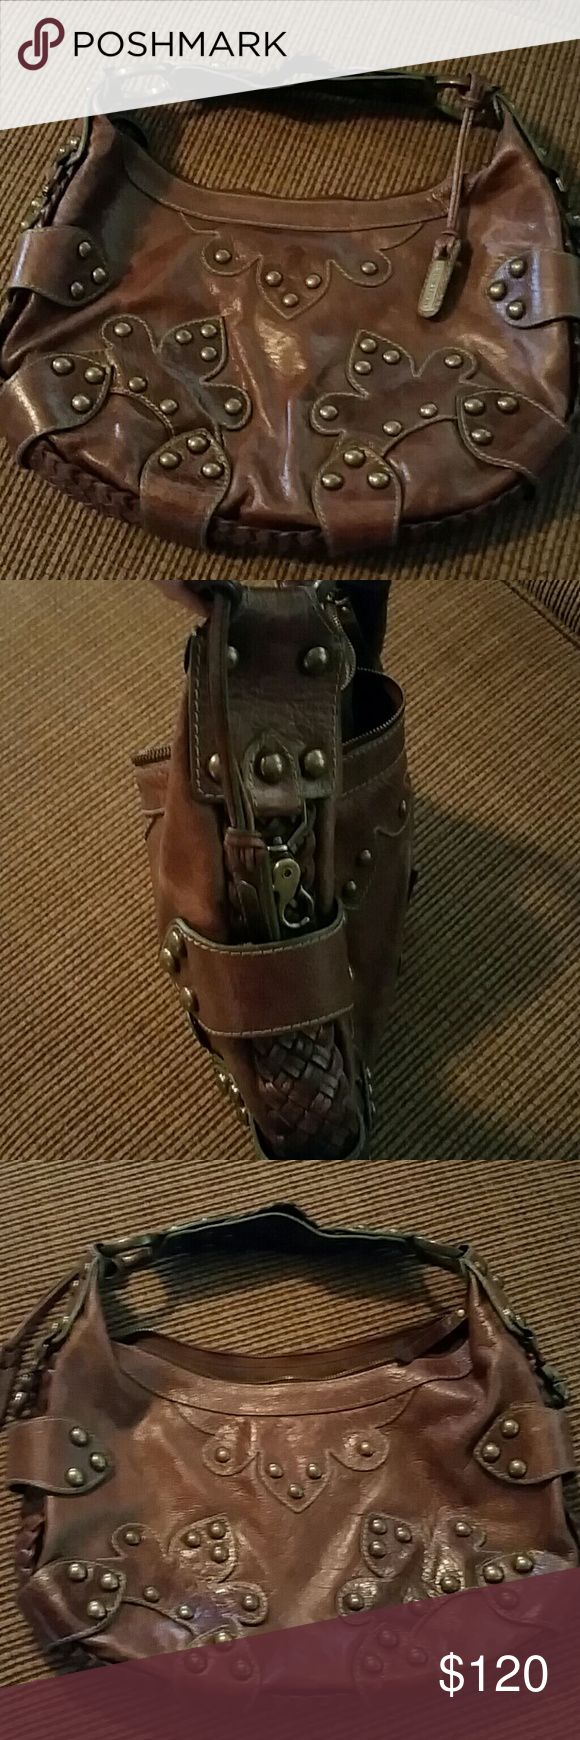 Isabella fiore distressed leather oasis bag Great condition used lightly - very substantial hardware just a beautiful handbag Isabella Fiore Bags